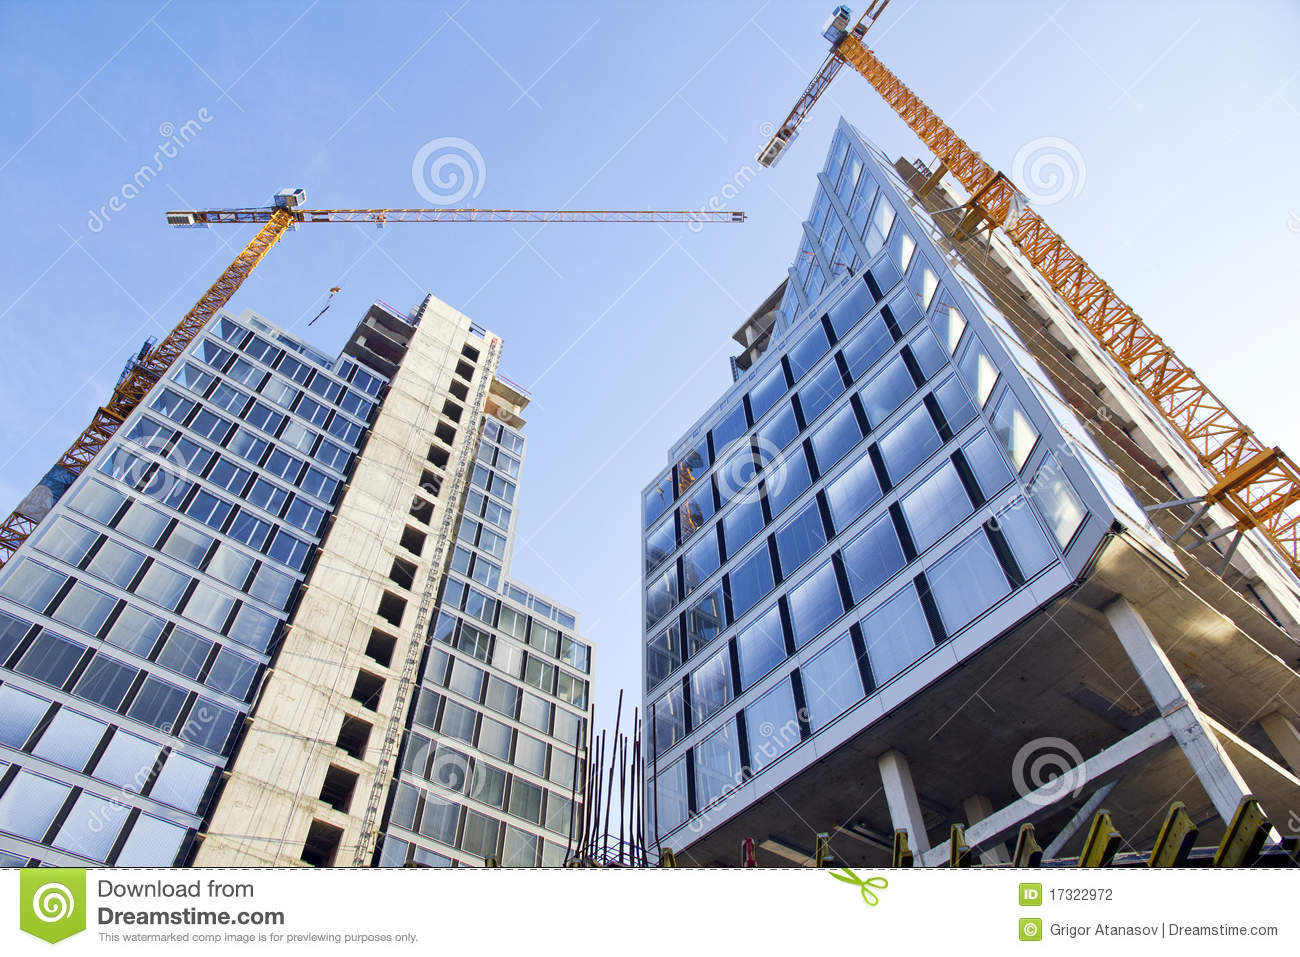 Construction of buildings